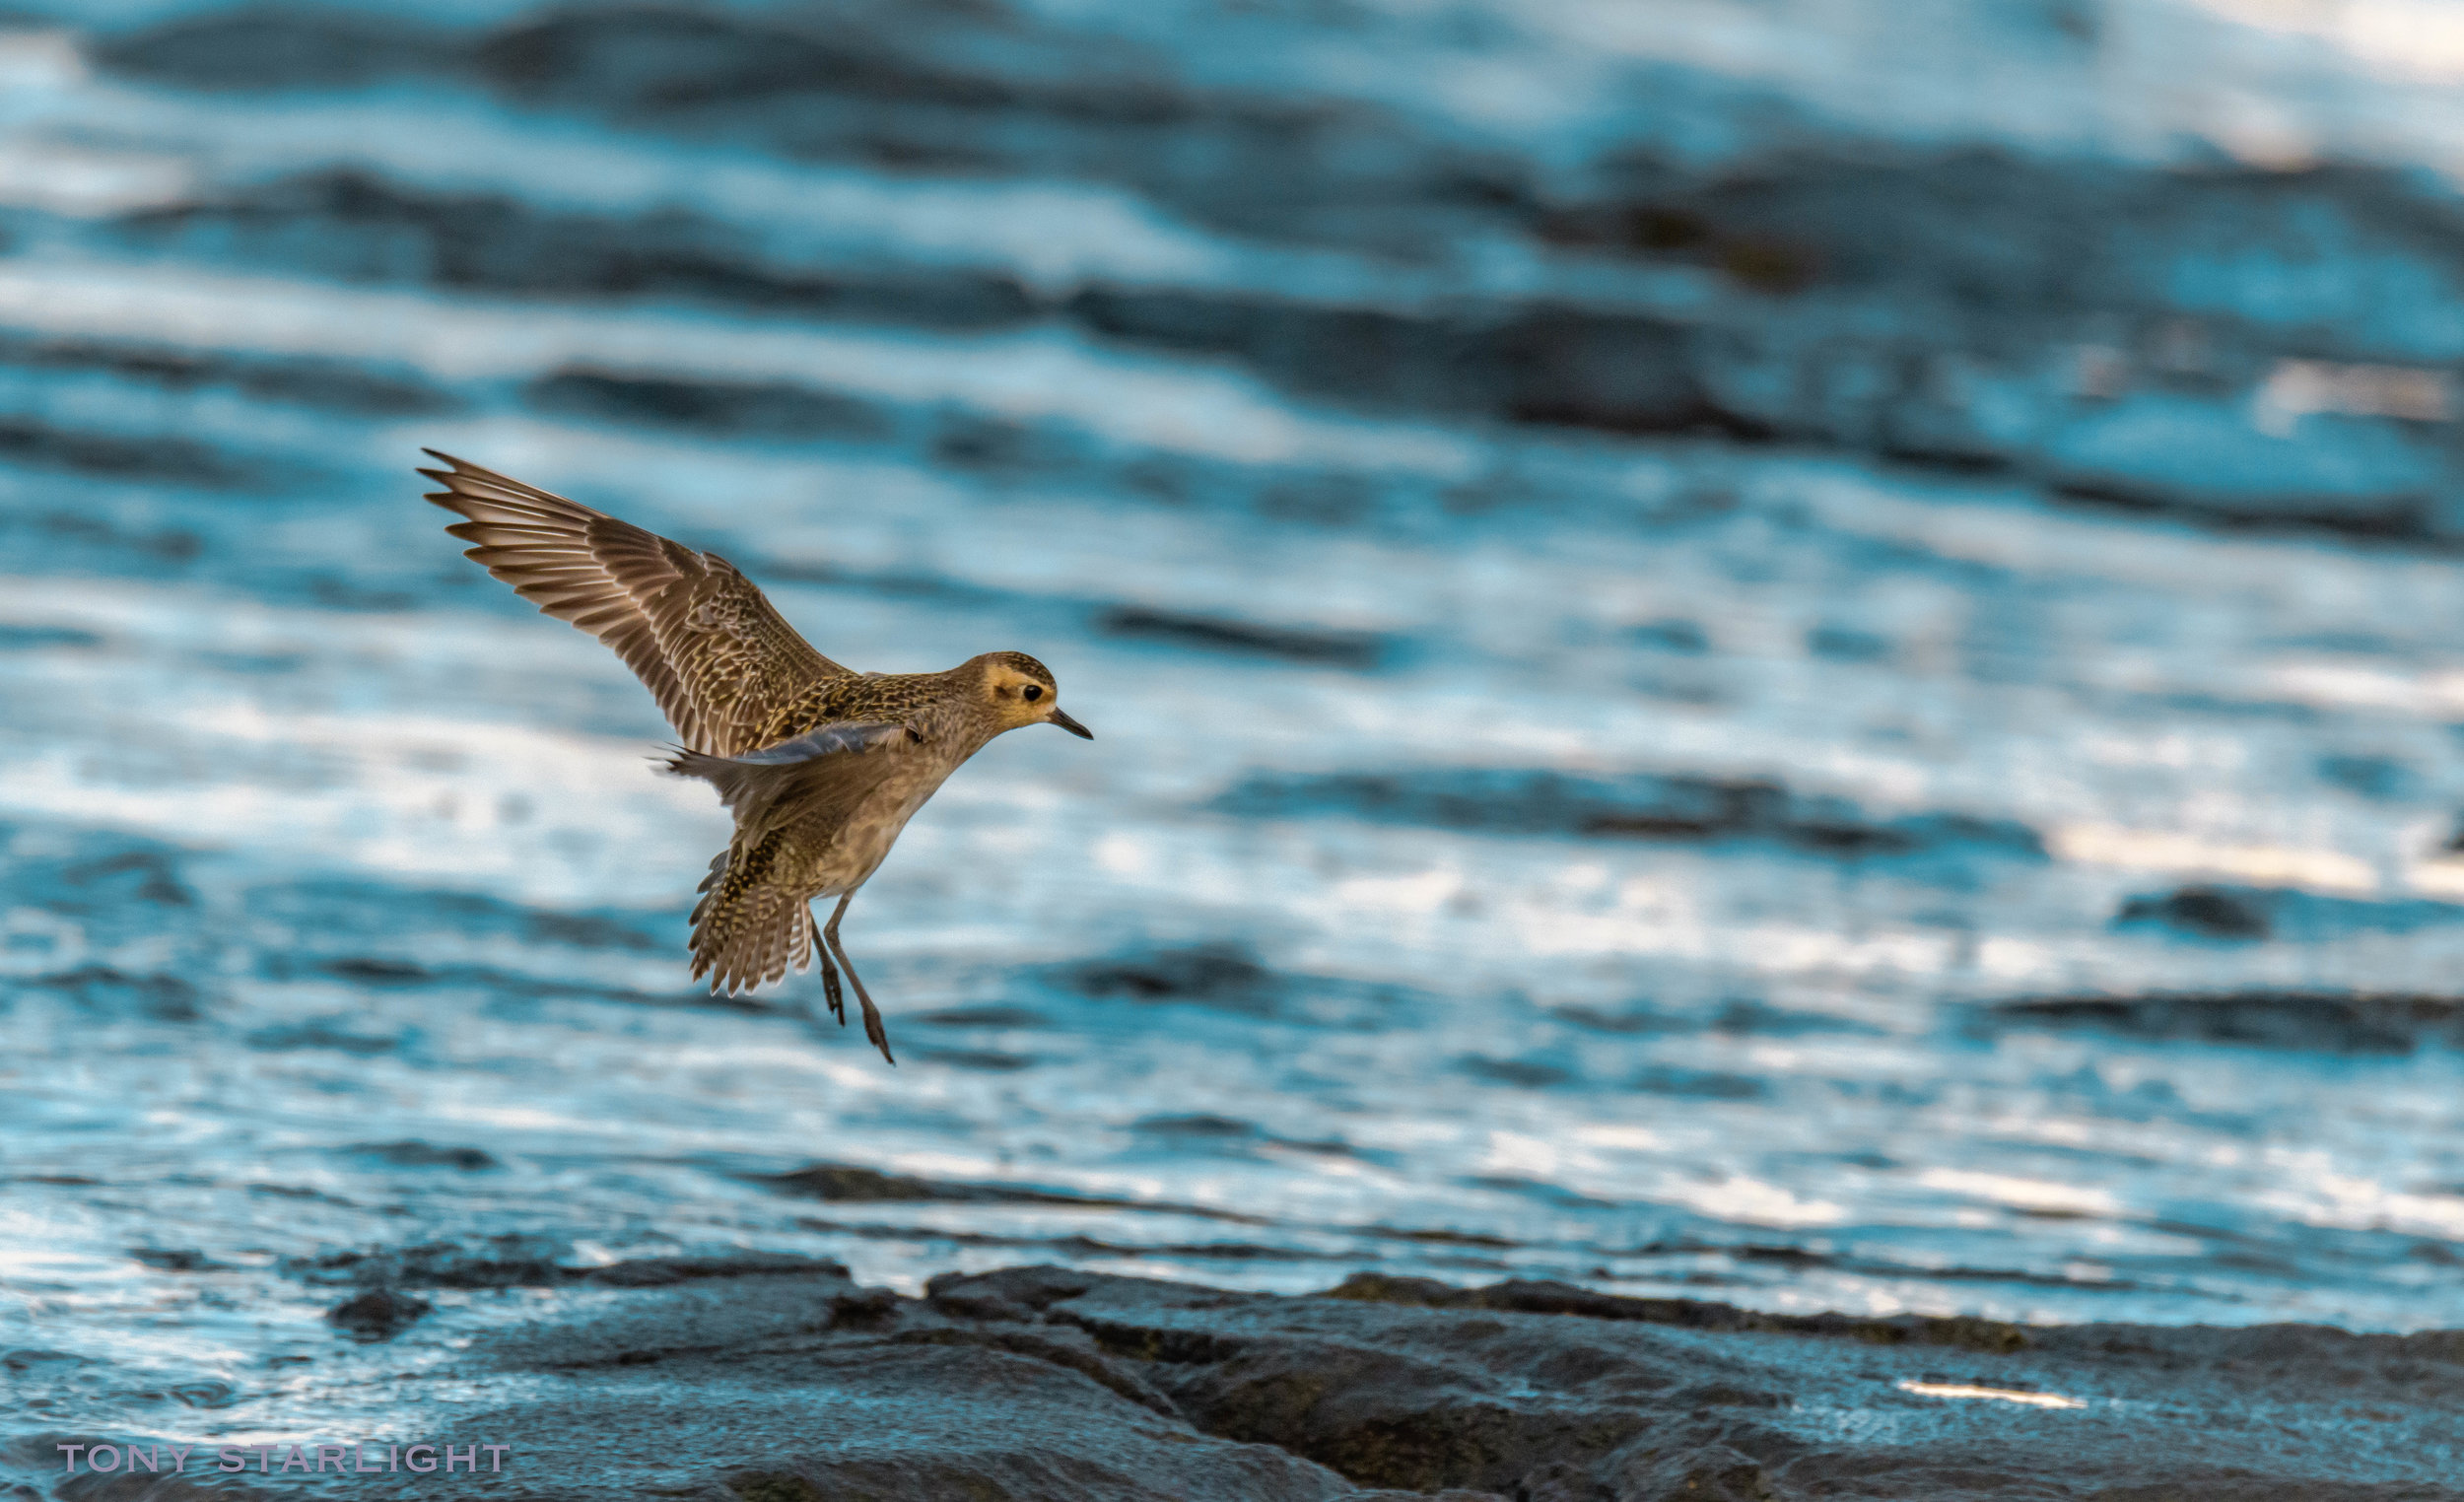 Pacific Golden-plover - These loners can be seen at odd locations throughout the island. Hotels, golf courses, lava rocks, beaches, parking lots. And even mid-air.